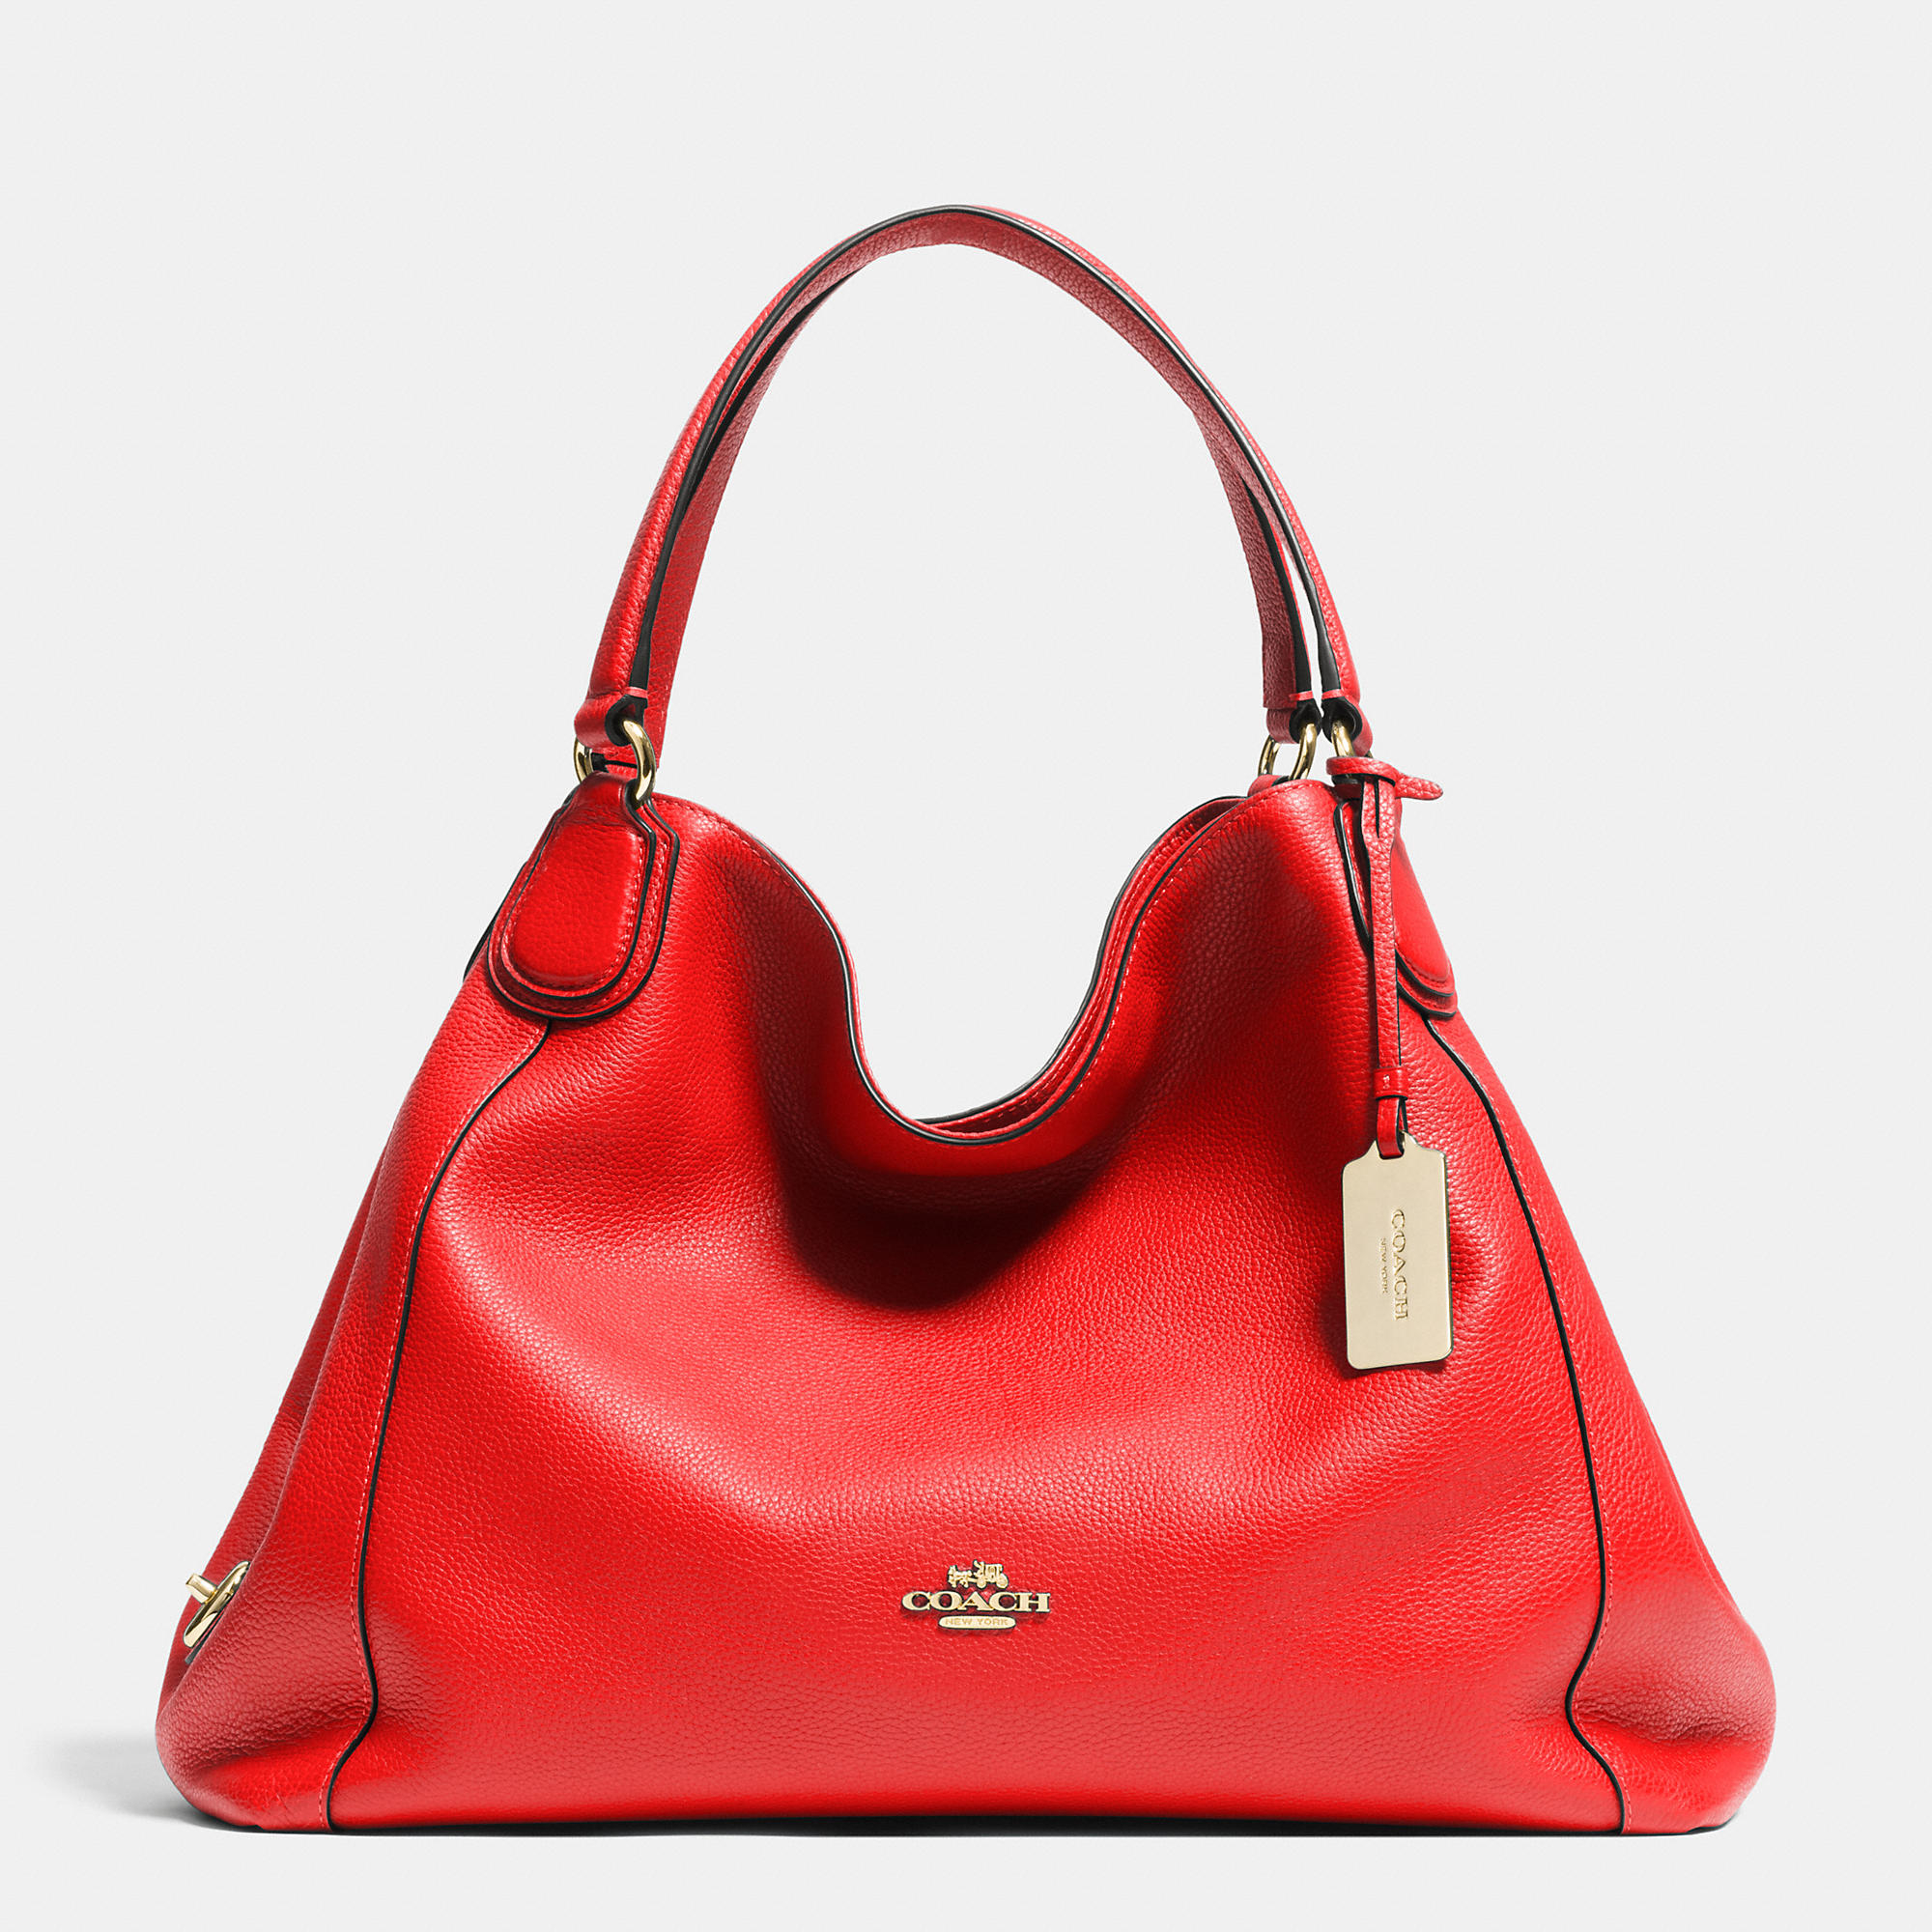 199547c3a ... france lyst coach edie shoulder bag in pebble leather in red b8073 af5c8